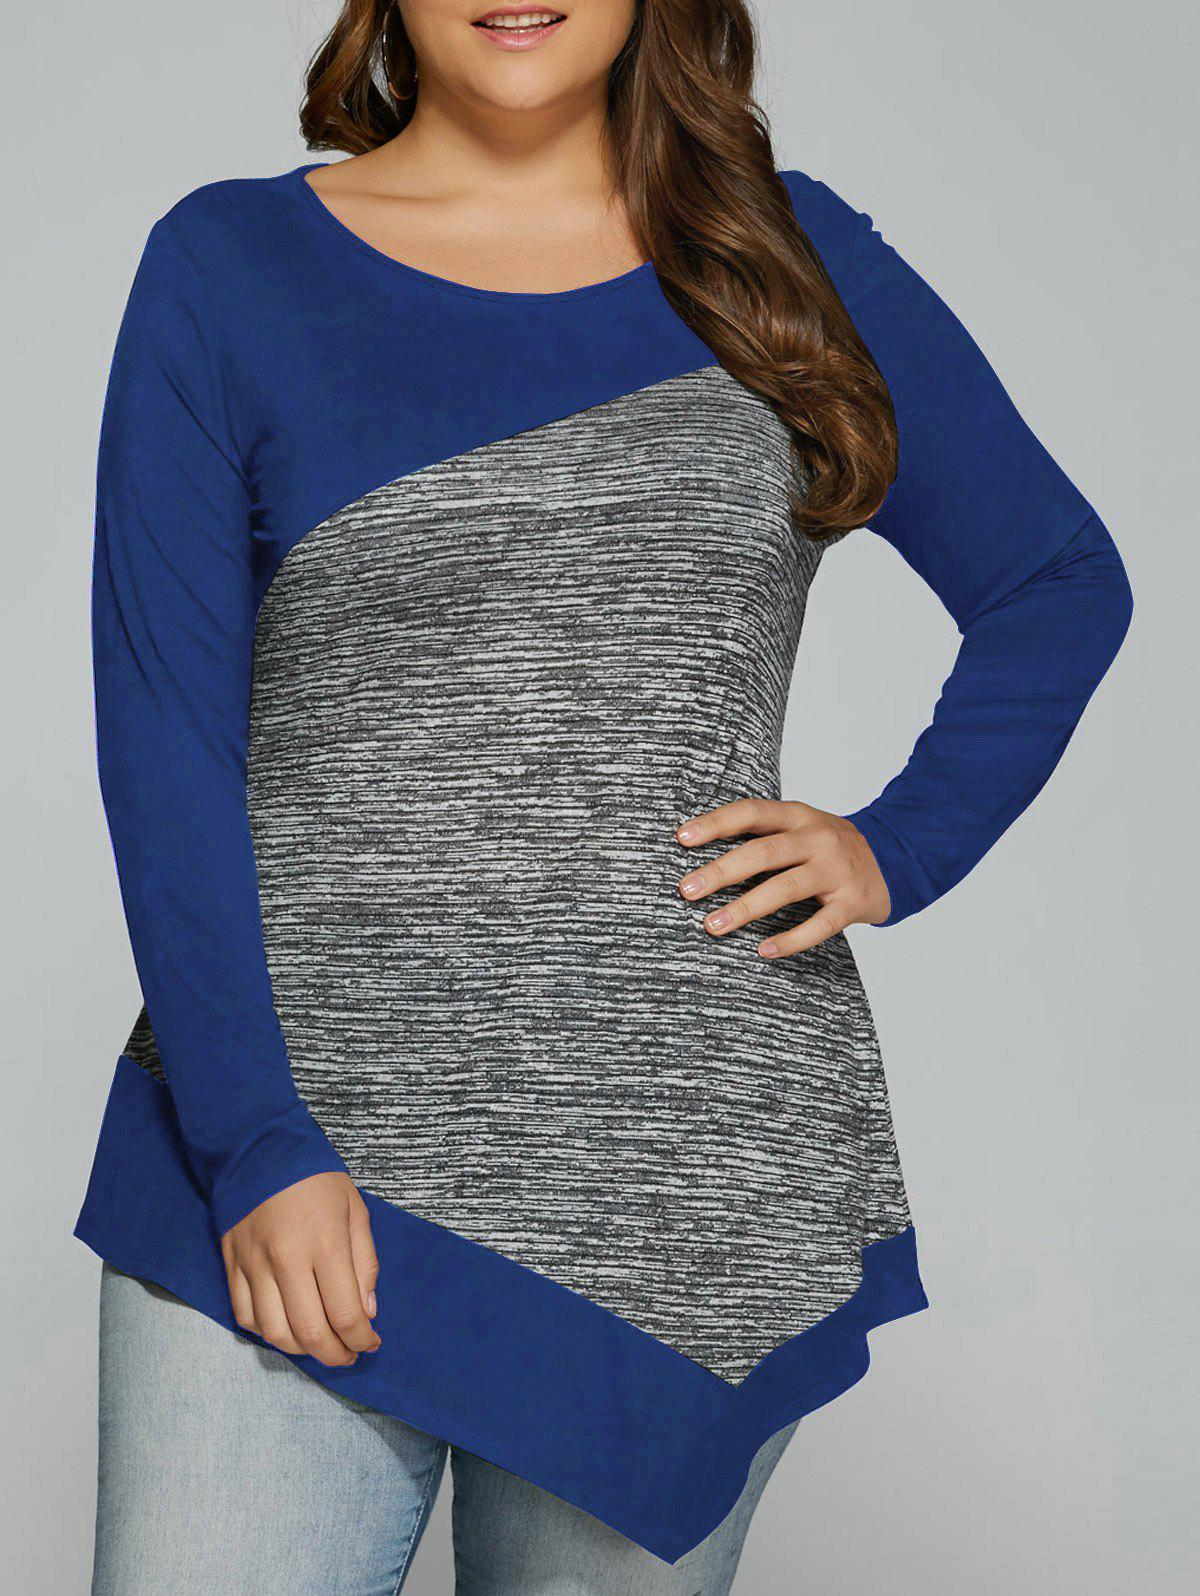 Long Sleeve Plus Size Heather Trim Asymmetrical T-ShirtWOMEN<br><br>Size: 3XL; Color: BLUE; Material: Rayon; Shirt Length: Long; Sleeve Length: Full; Collar: Scoop Neck; Style: Casual; Season: Fall,Spring; Pattern Type: Patchwork; Weight: 0.370kg; Package Contents: 1 x T-Shirt;